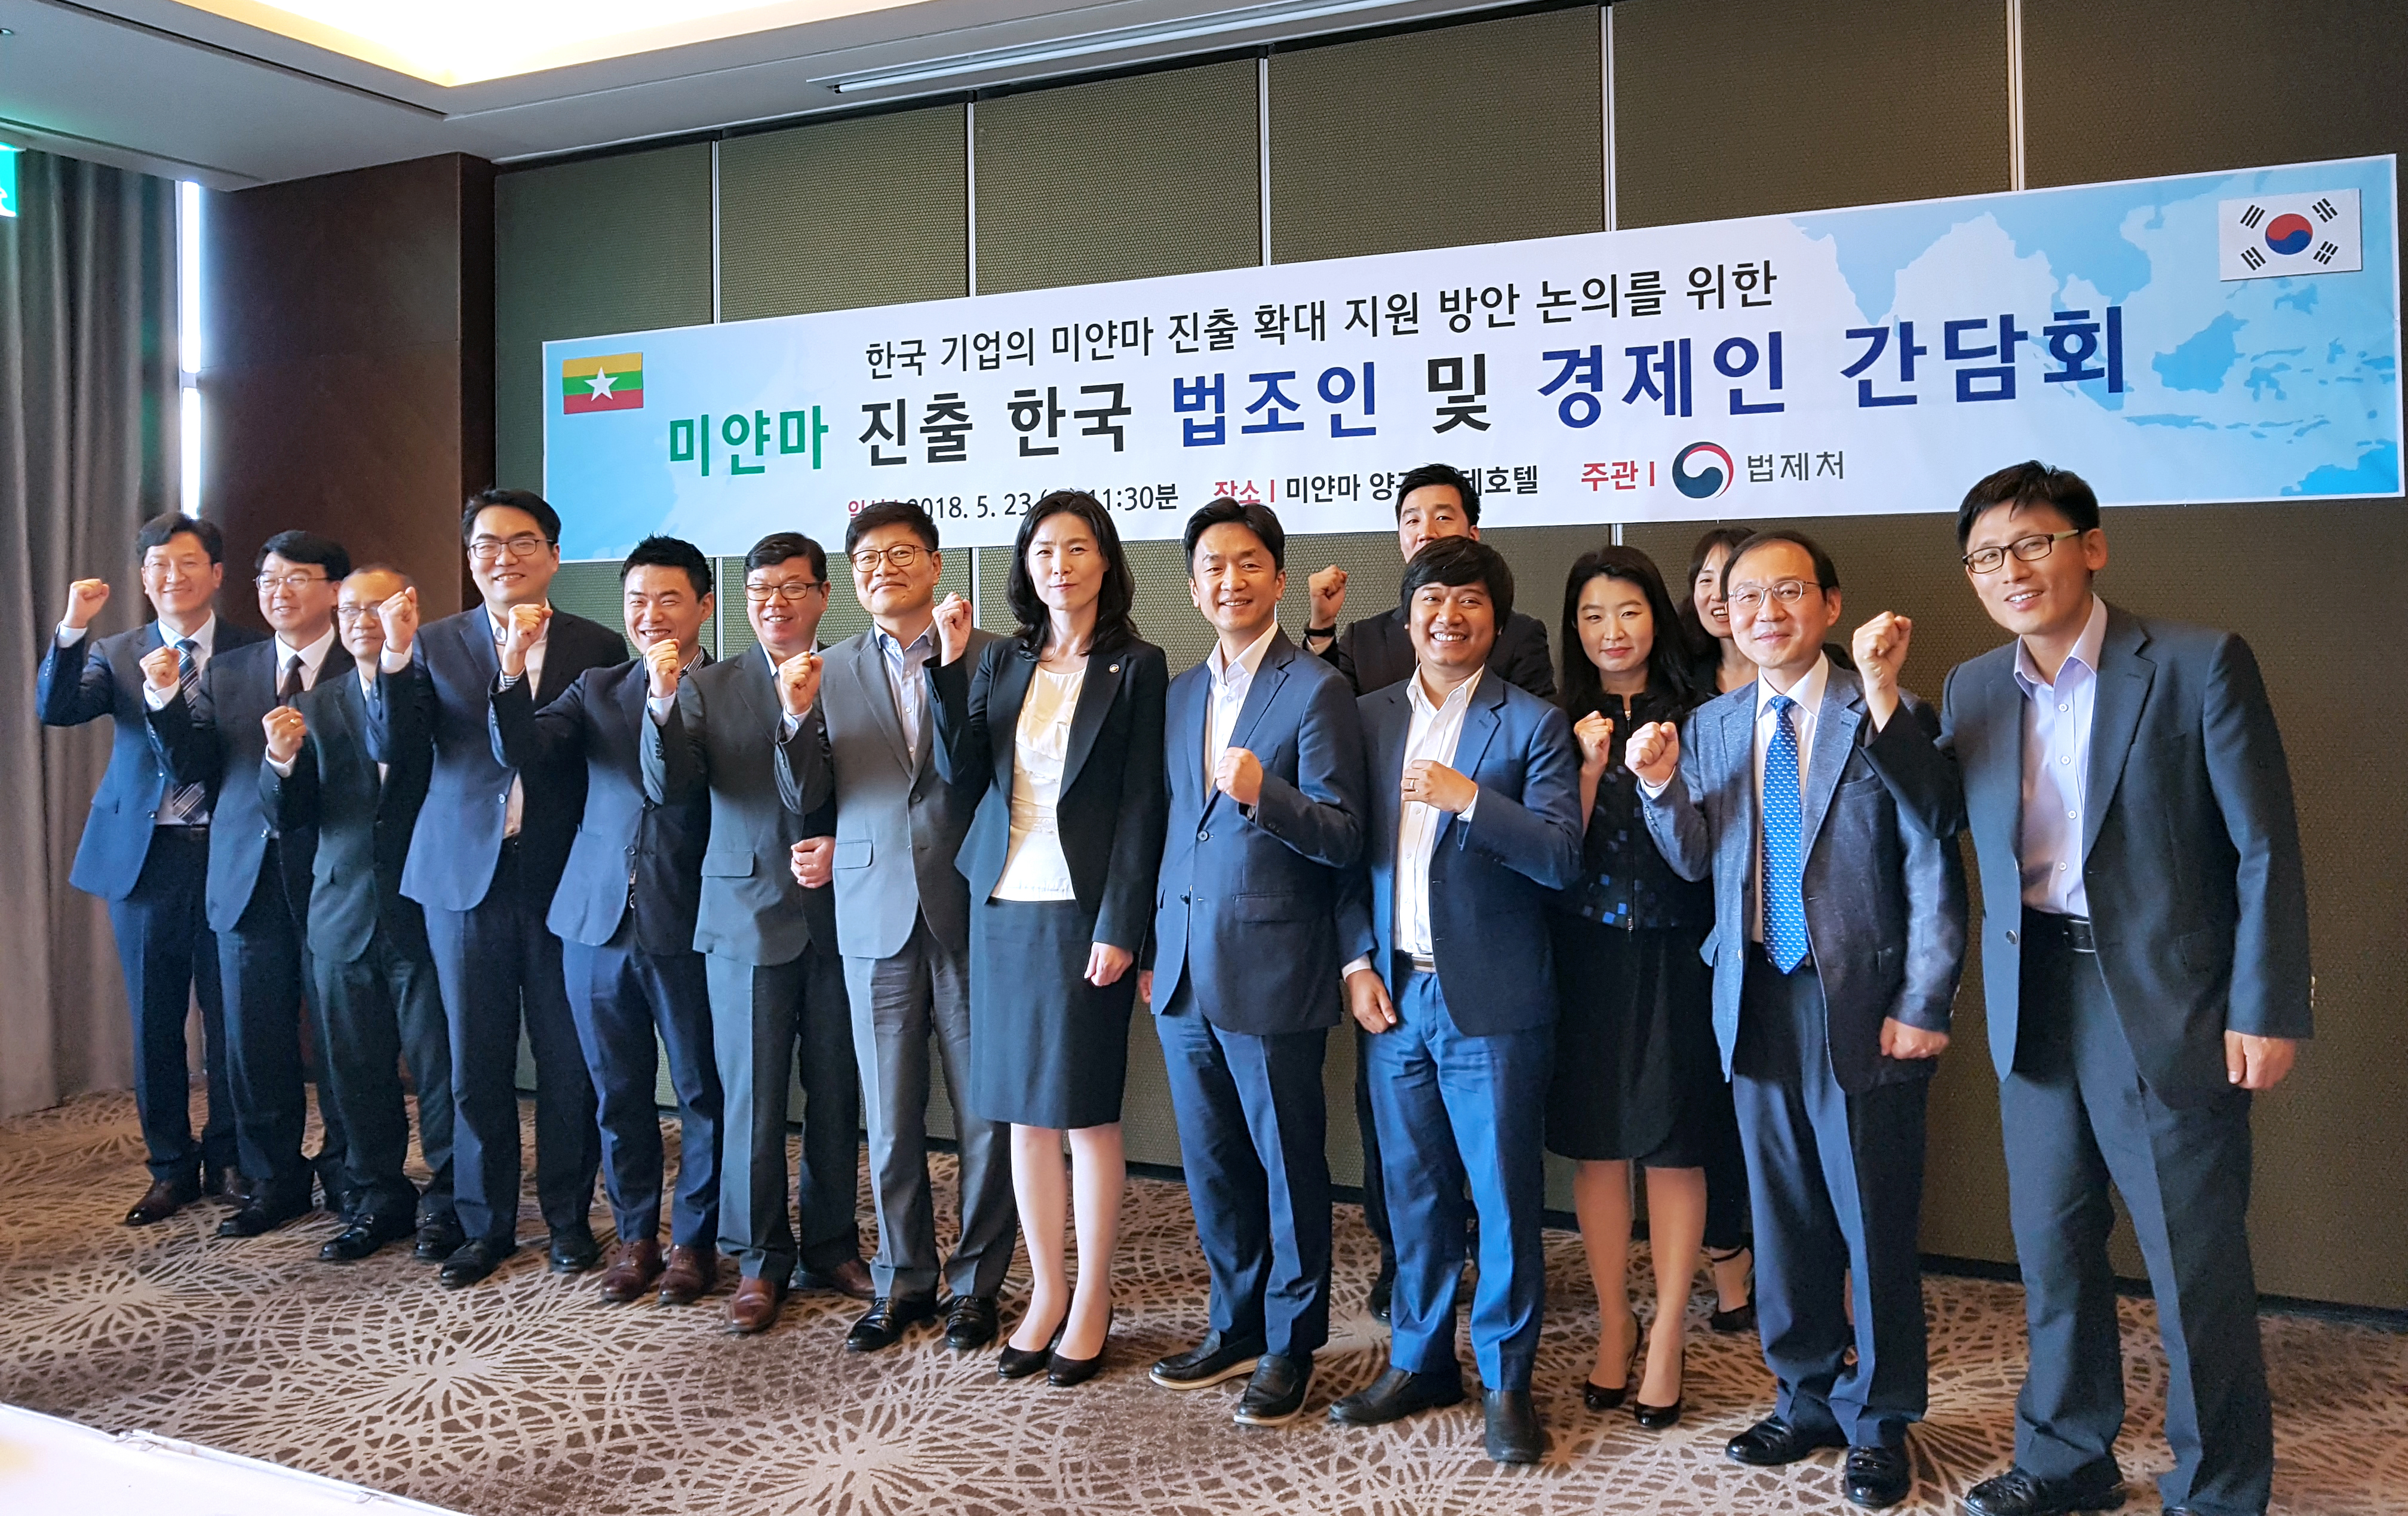 Minister Kim met with lawyers and businessmen